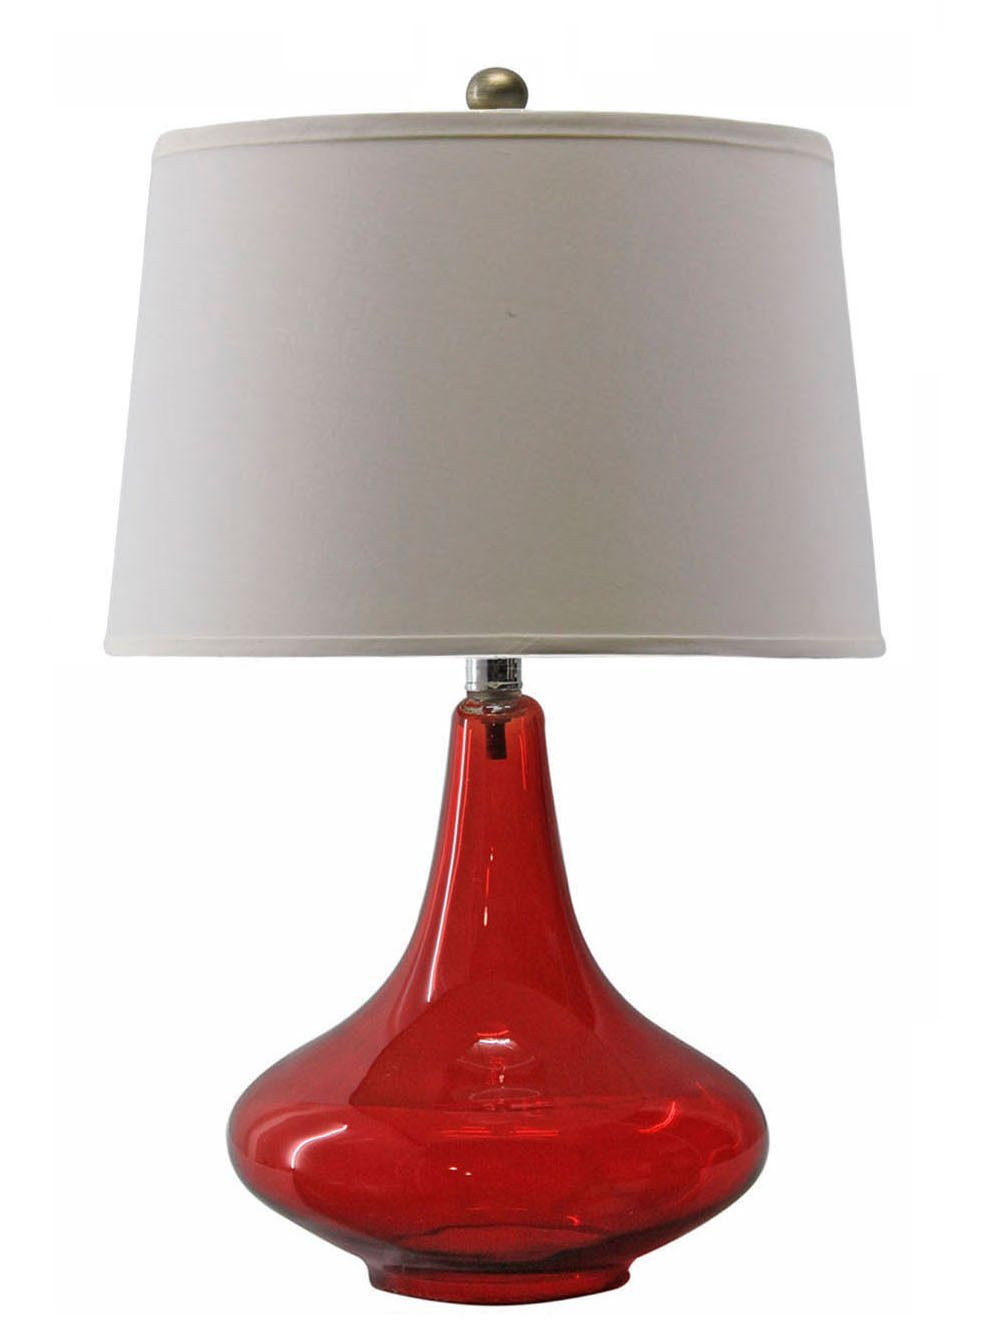 Red Glass Desk Lamp With Fabric Shade - China Desk Lamp, Glass Lamp